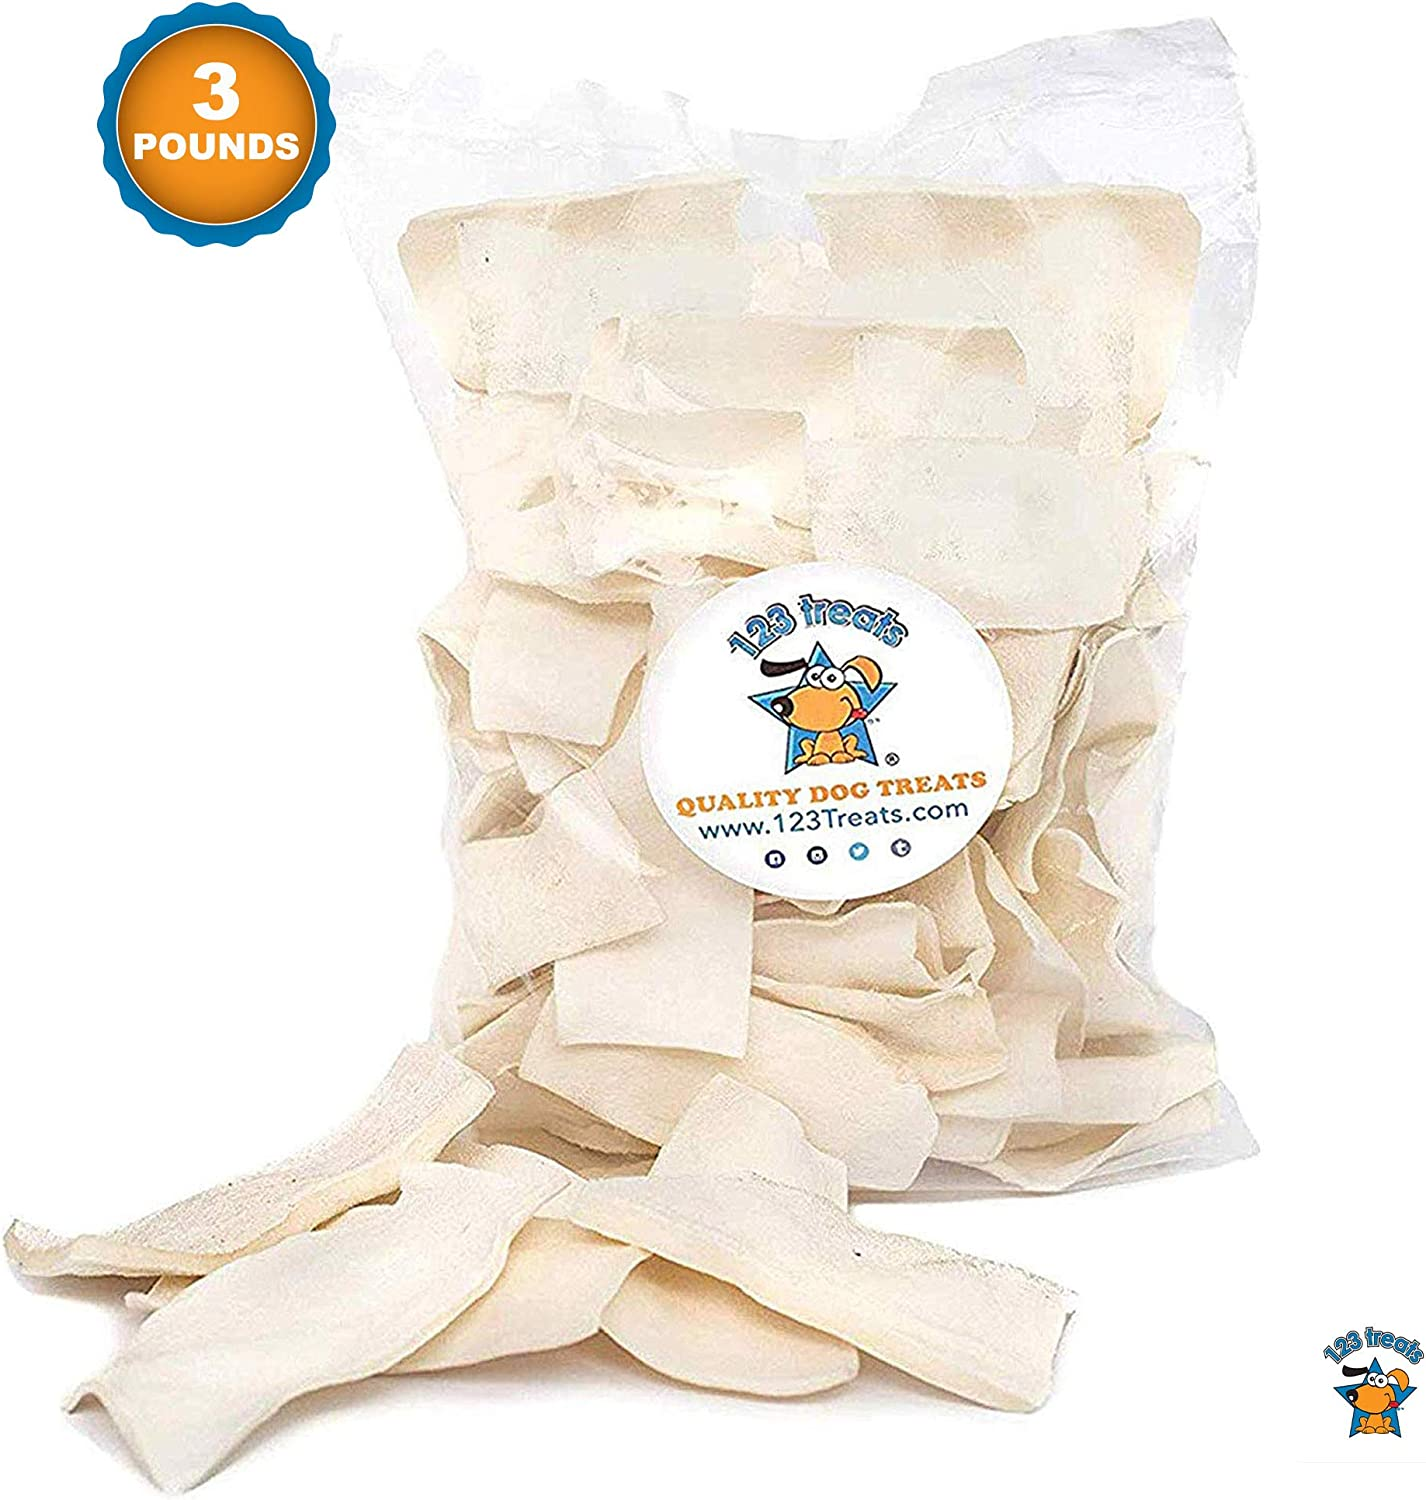 123 Treats - Rawhide Chips Dog Chews | 100% All-Natural Grass-Fed Free-Range Beef Hide for Dogs with No Hormones, Additives or Chemicals 71cTCdeT9zL